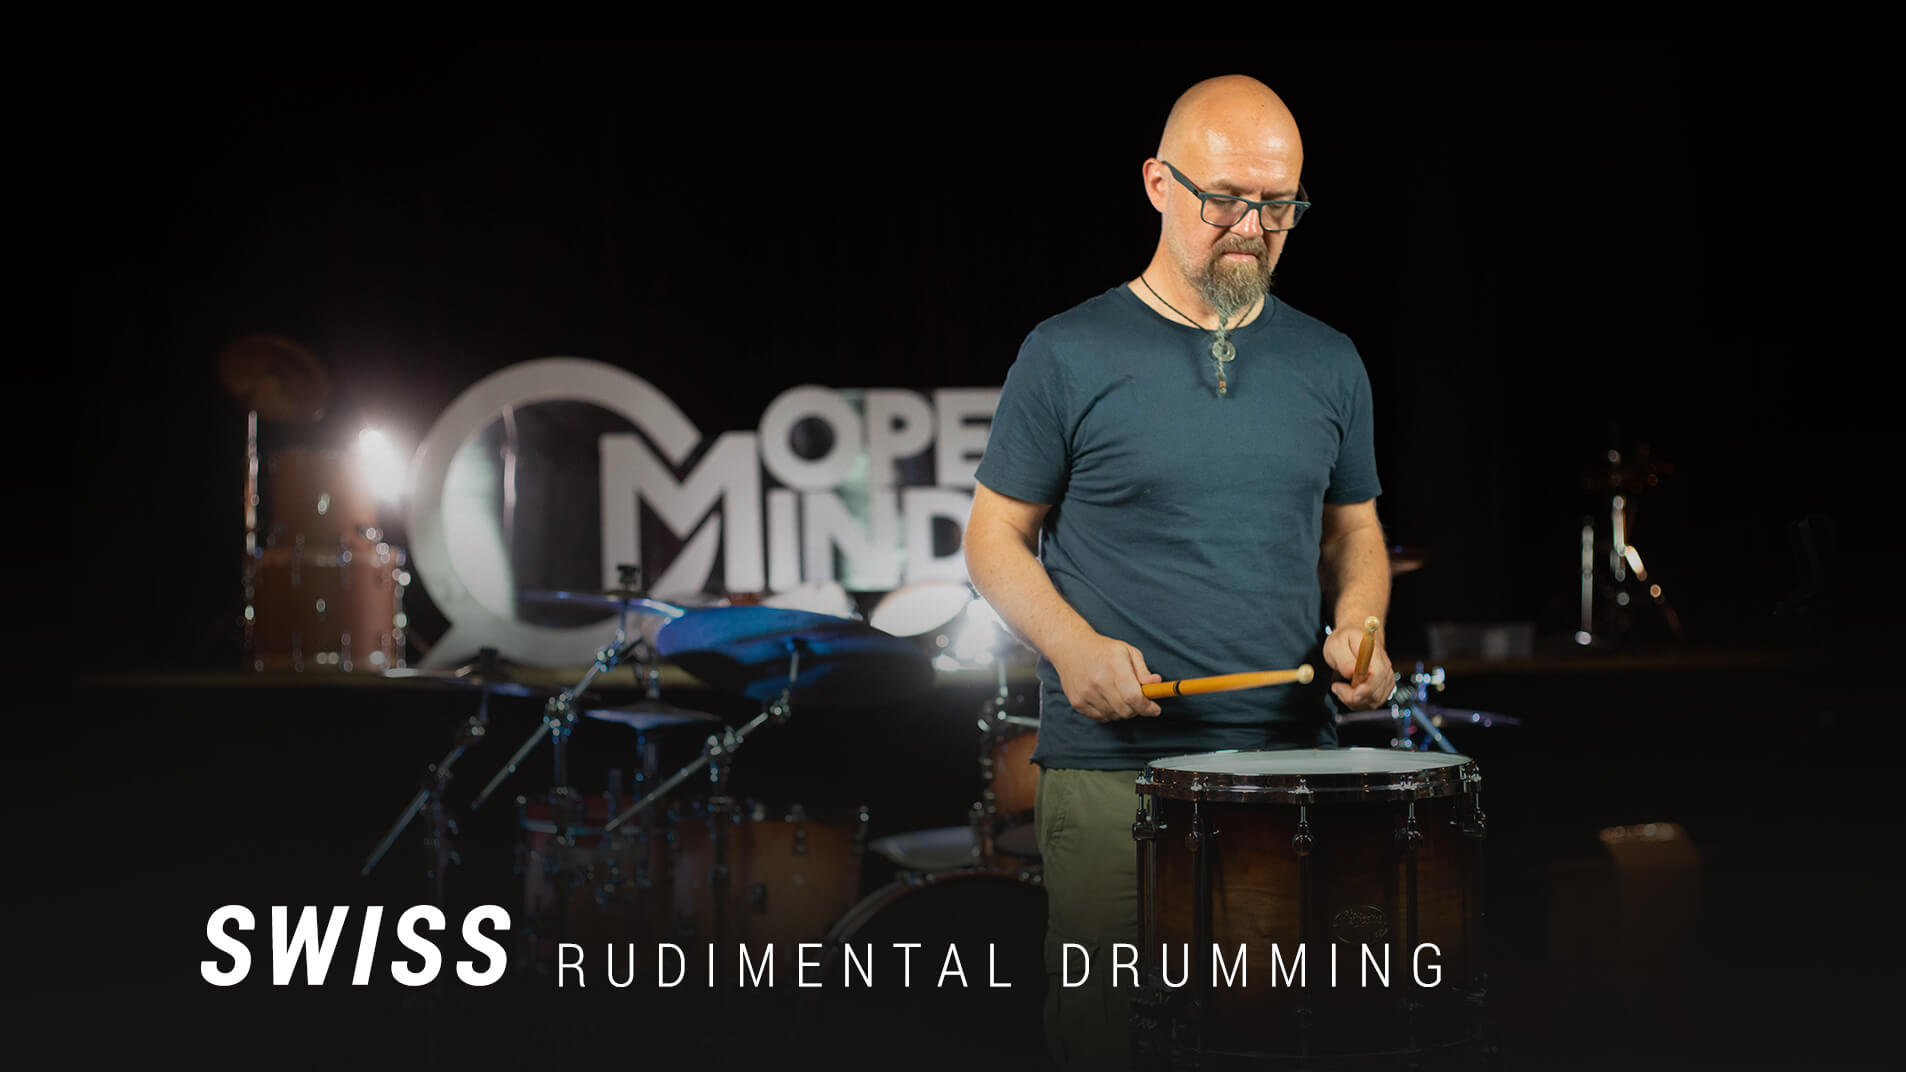 swiss-rudimental-drumming-thumbnail-sign-bottom